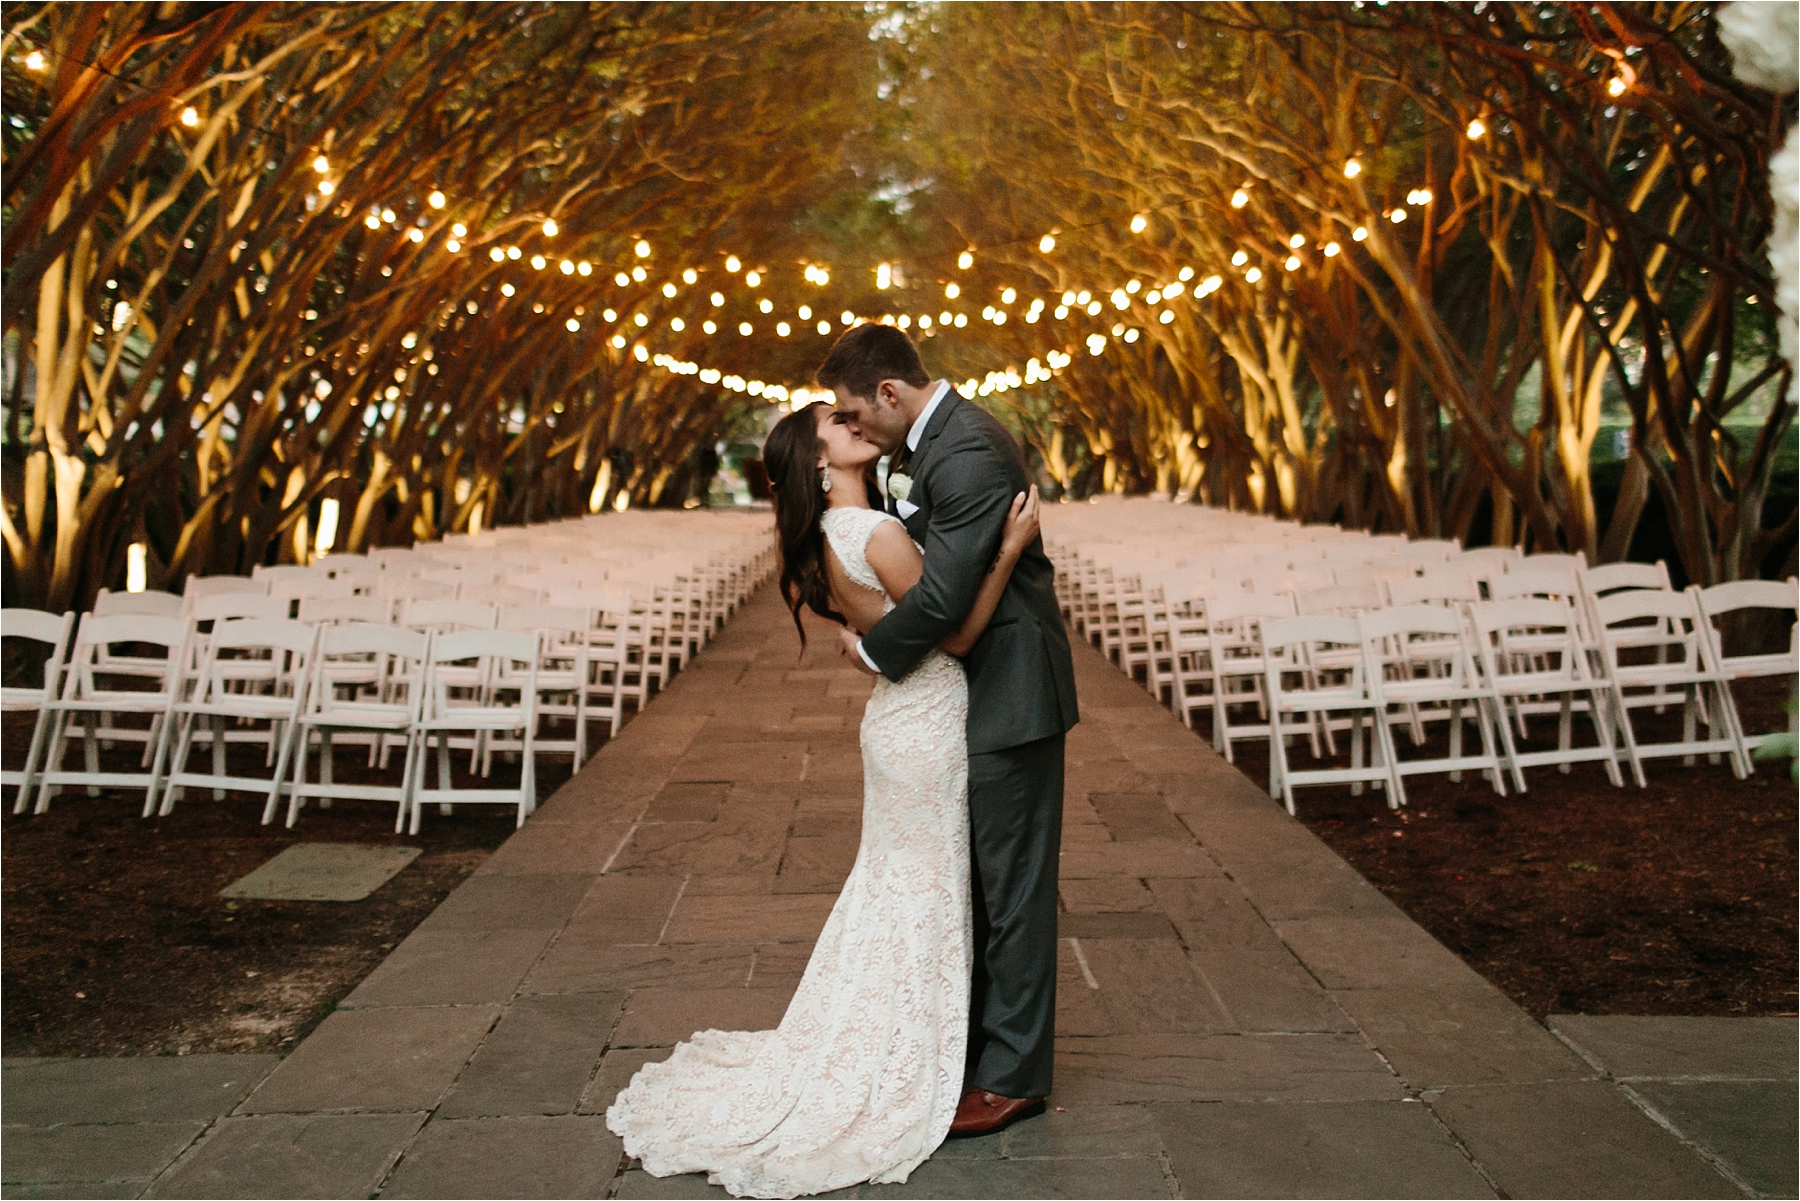 Devyn + Caden __ a Dallas Arboretum Garden Style Wedding by North Texas Wedding Photographer Rachel Meagan Photography __ 121